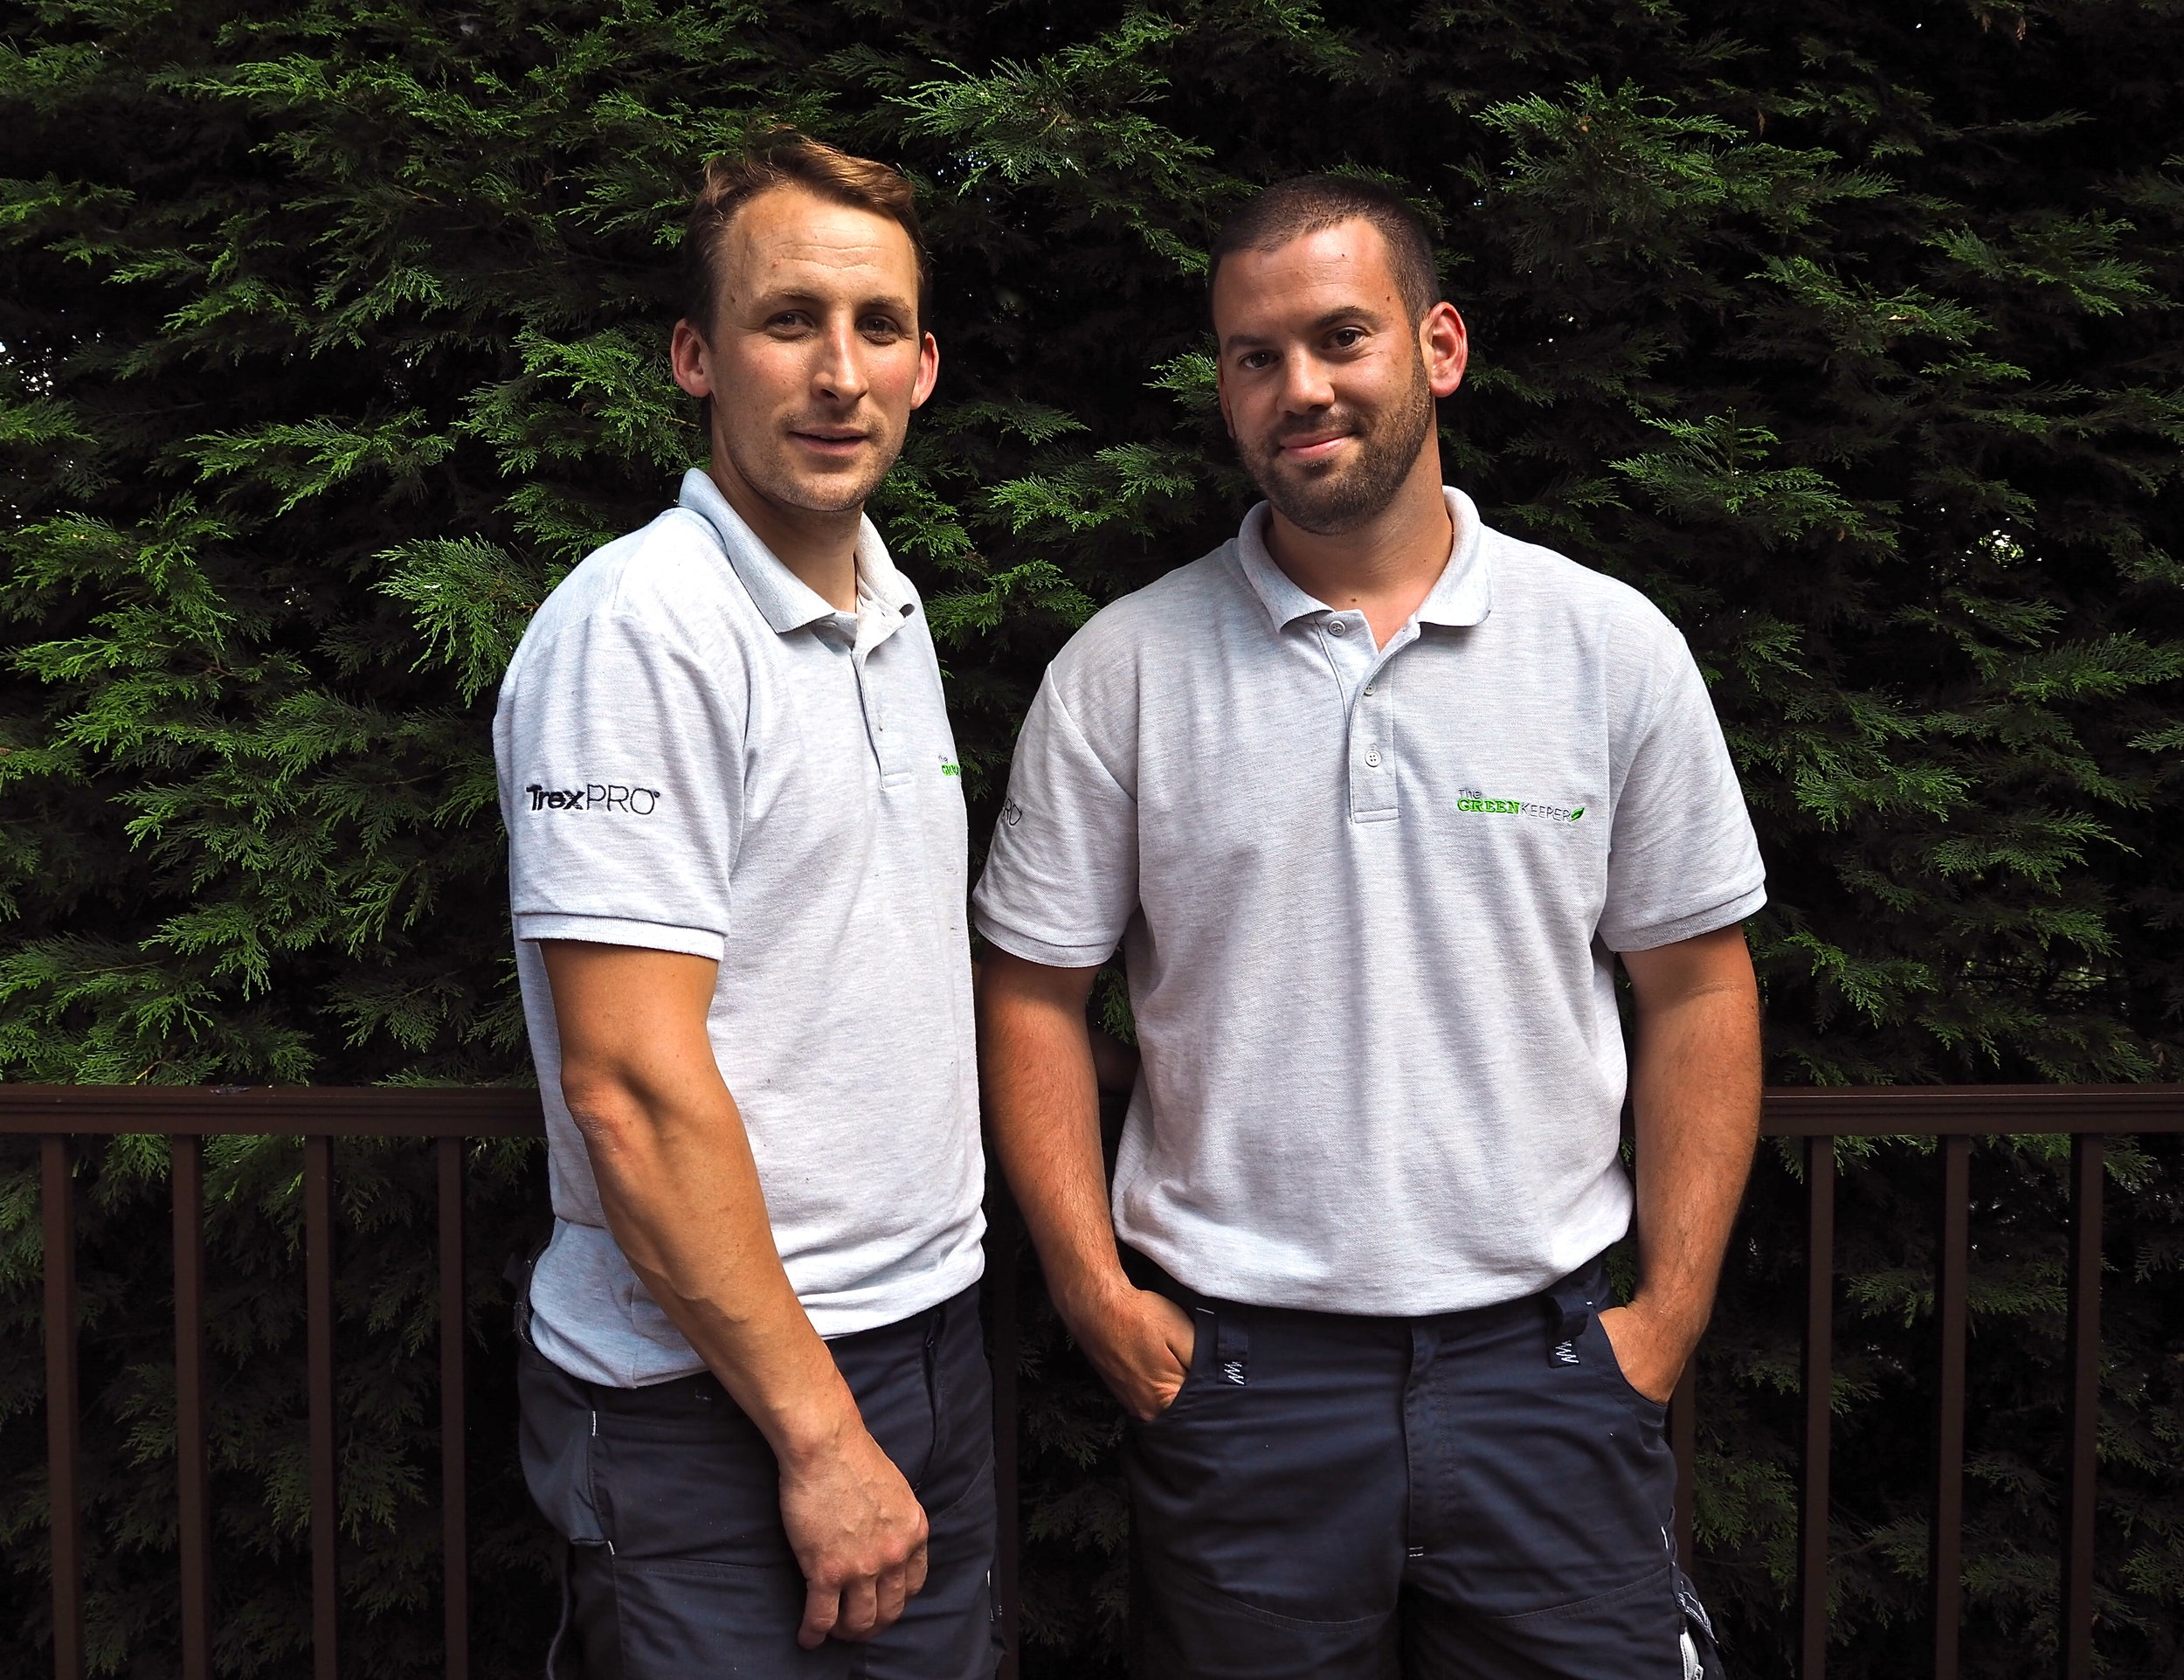 trex pro installers the greenkeeper